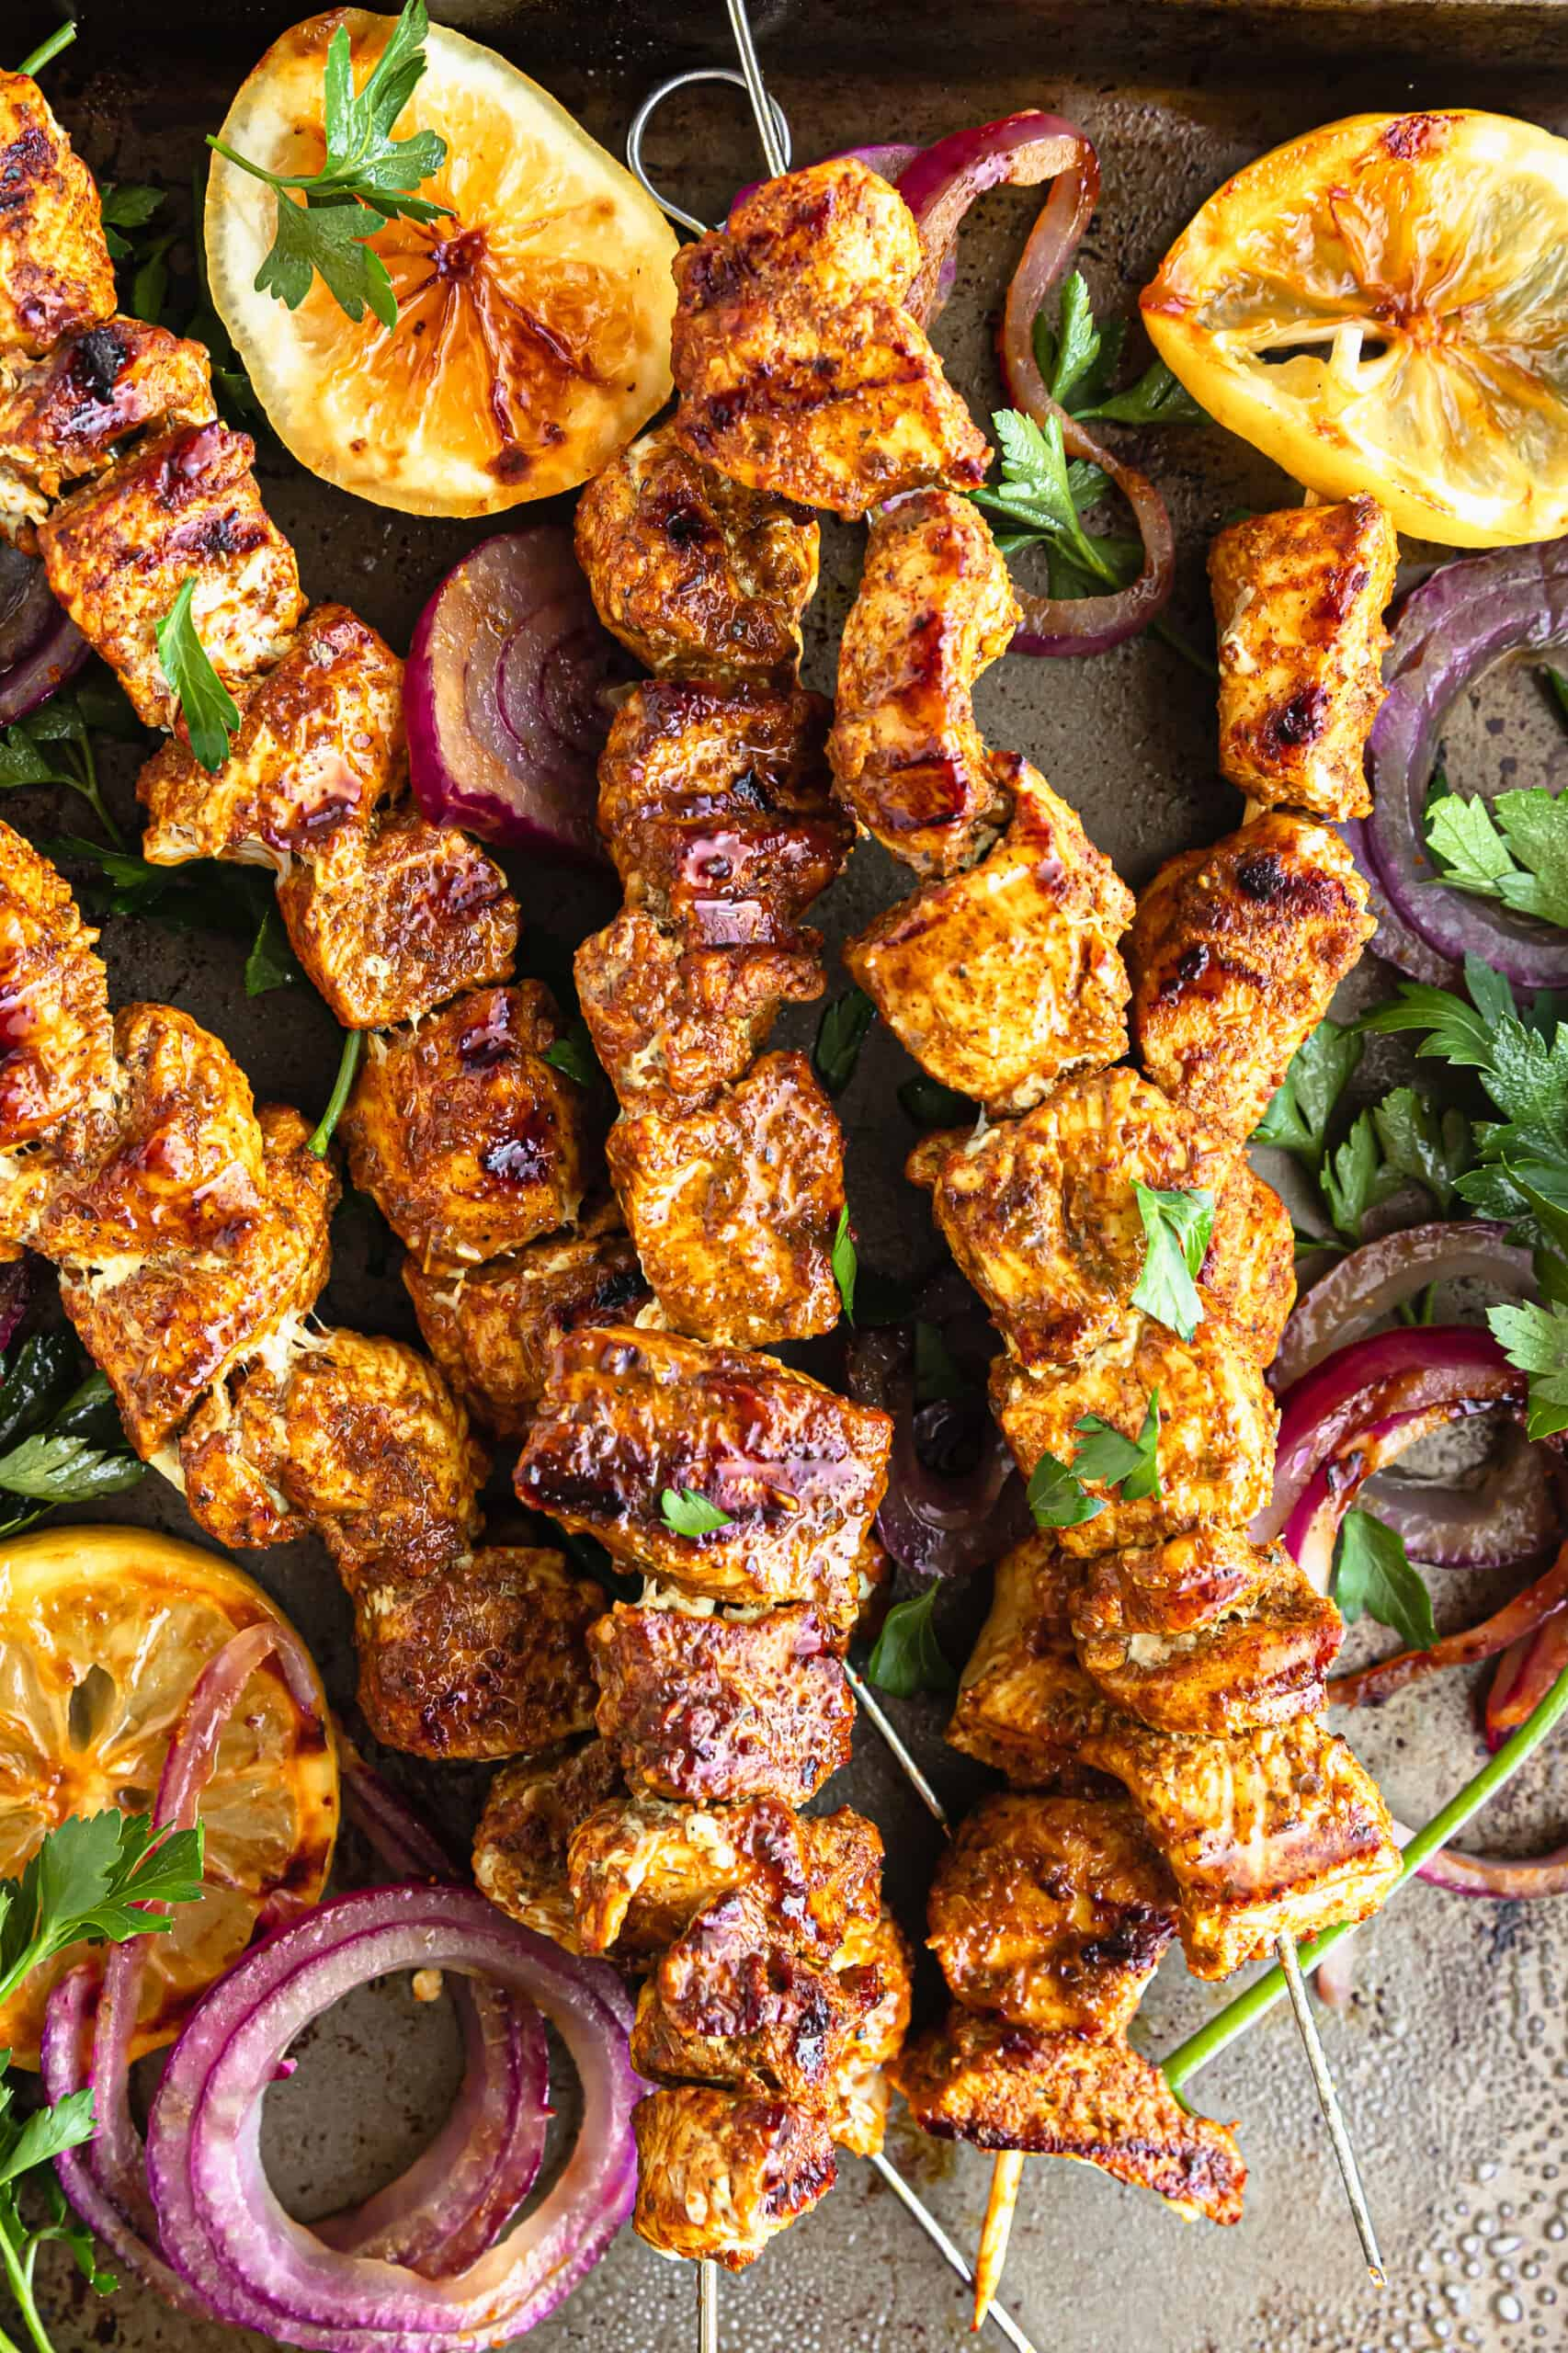 Grilled Chicken Shawarma Skewers arranged on a serving plate